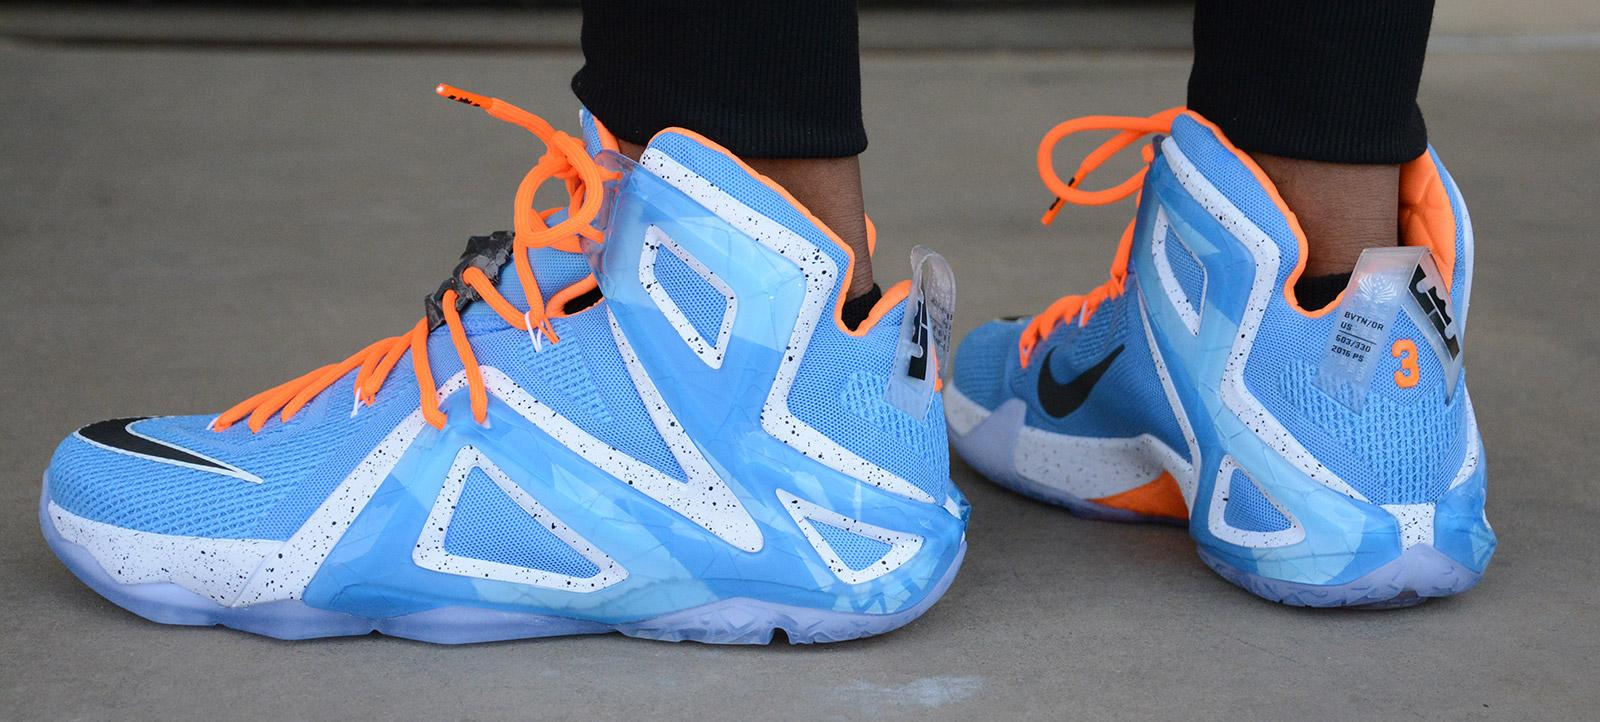 the best attitude 77f8e b5953 The Official Nike LeBron XII Thread-